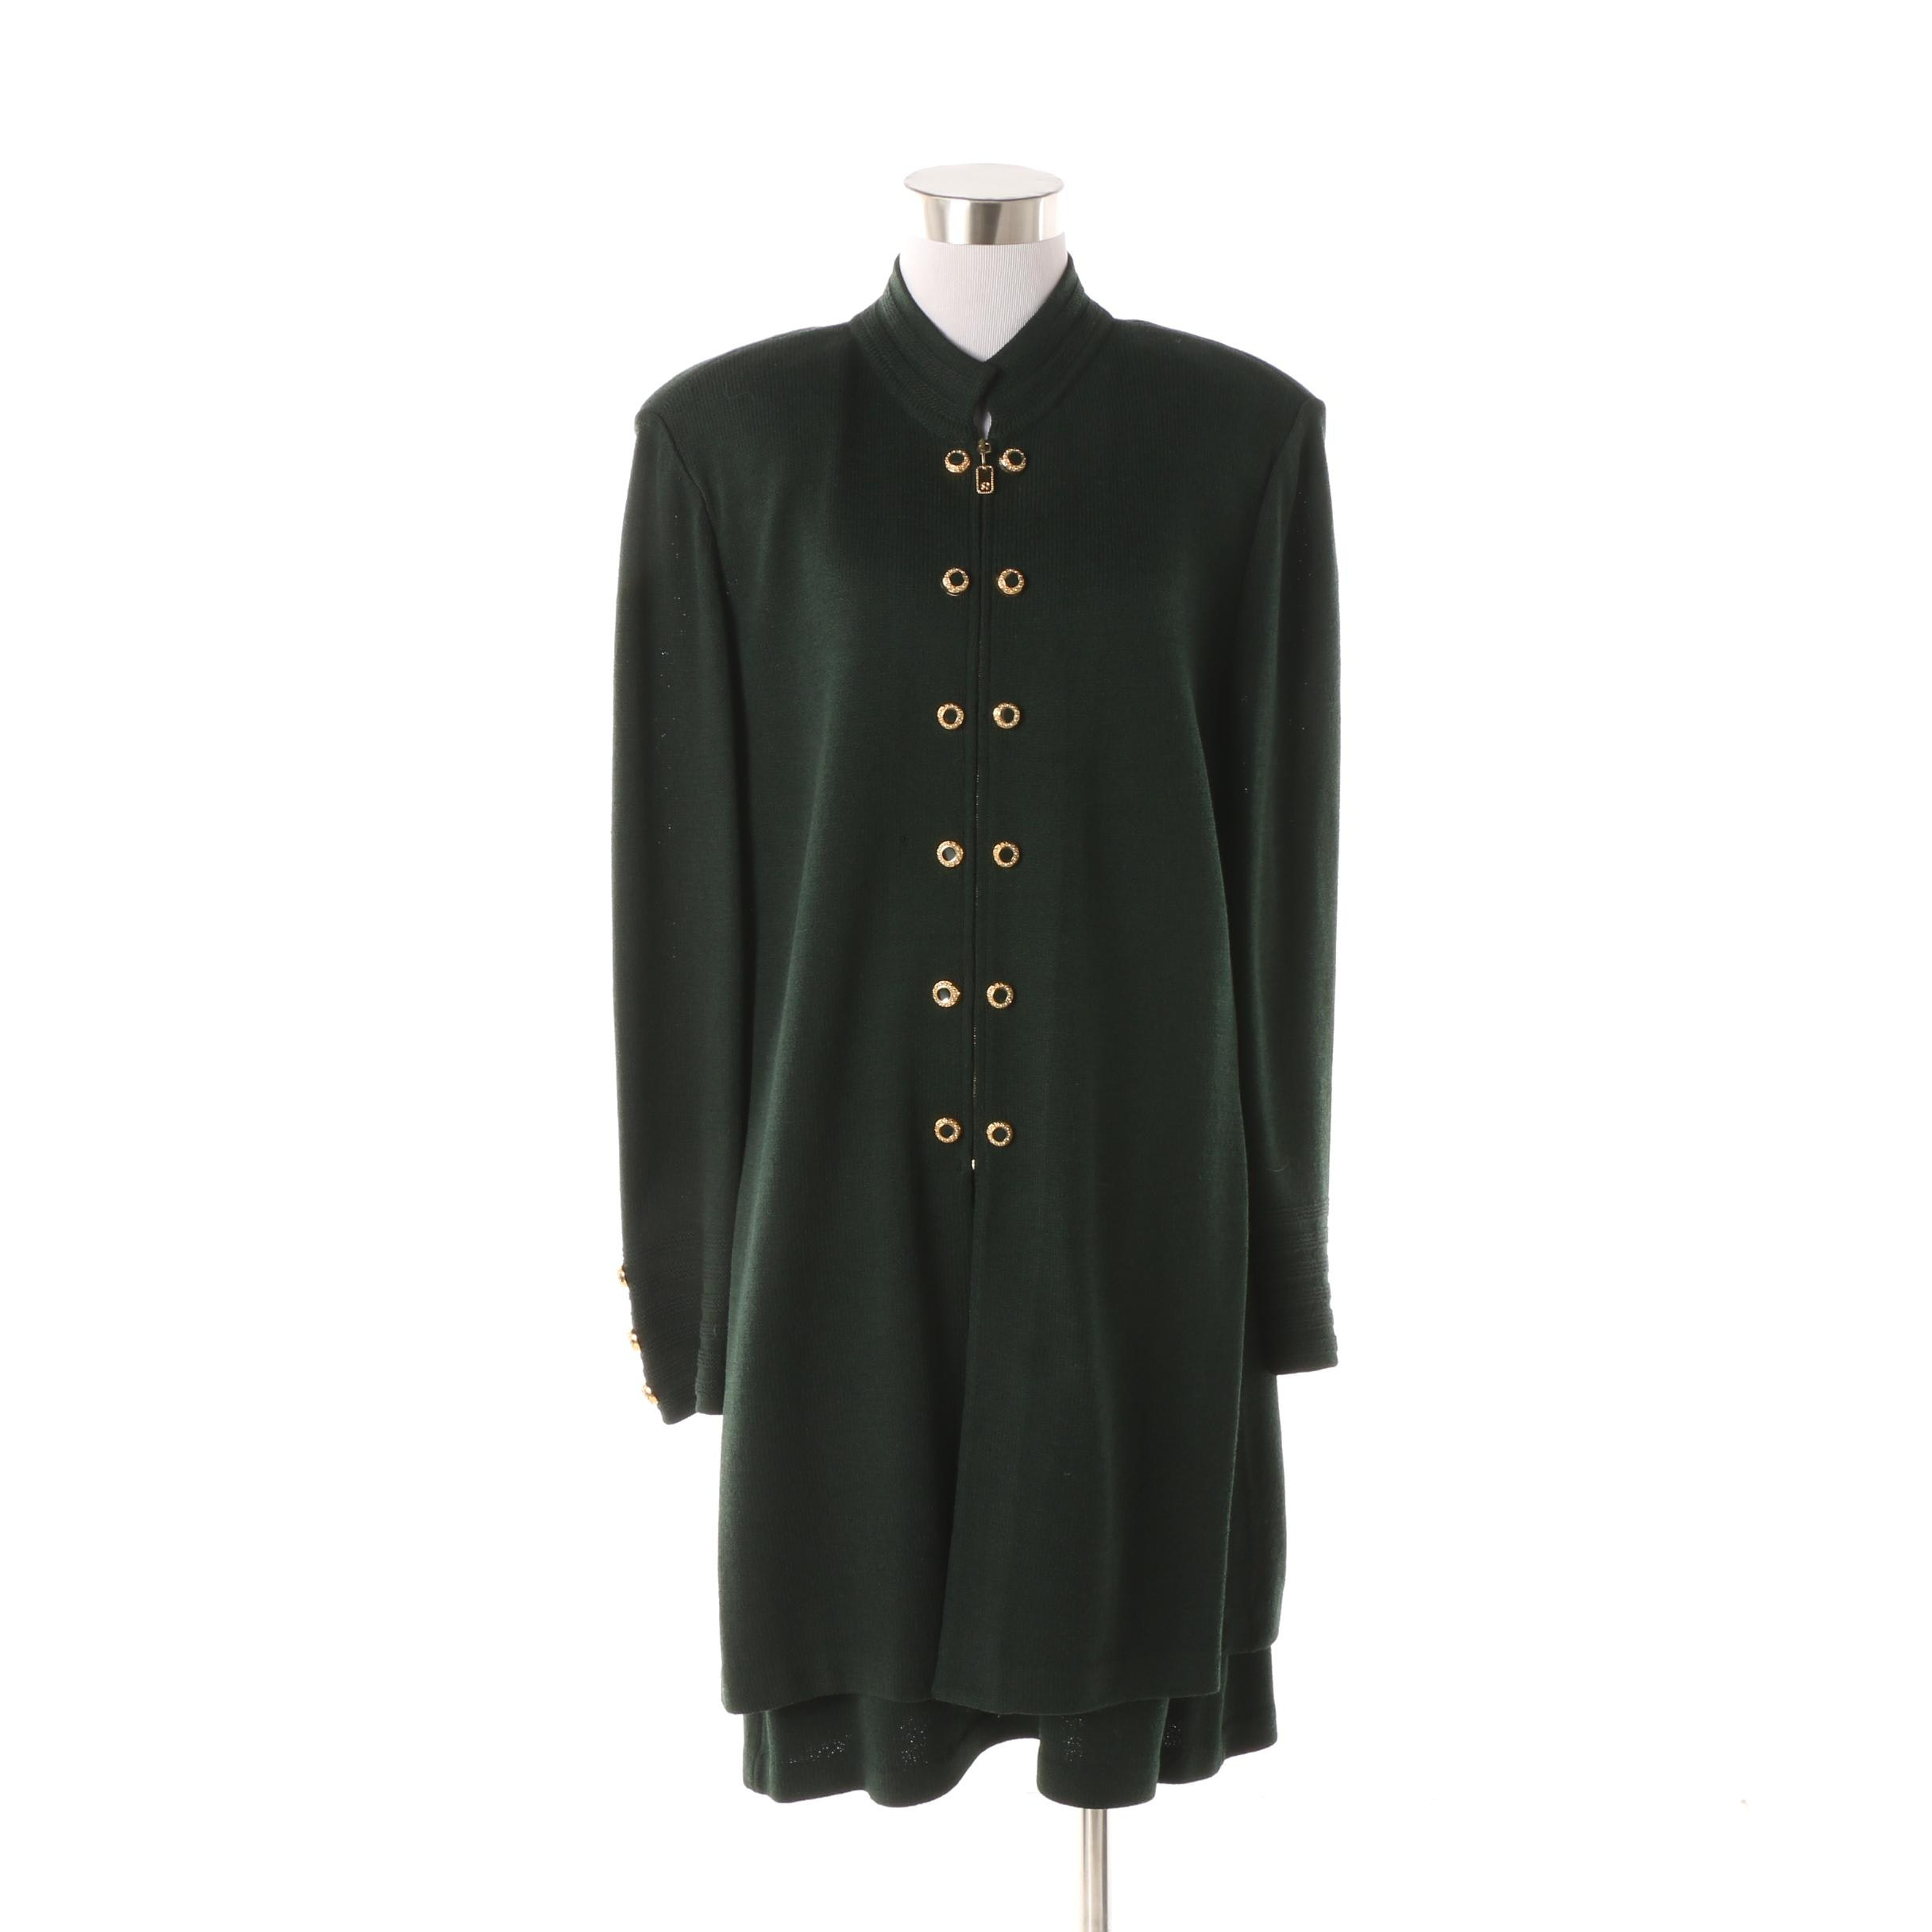 St. John Collection Dark Green Skirt Suit with Gold Tone Double Buttons